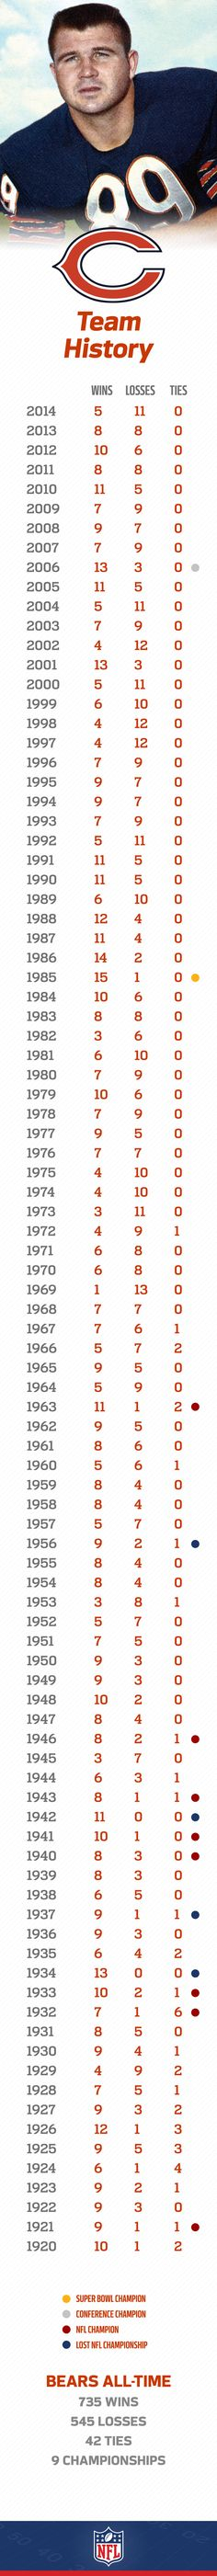 Da Bears have a long history of team and player success. They have the most Pro Football Hall of Fame inductees and the most regular season wins in NFL history.